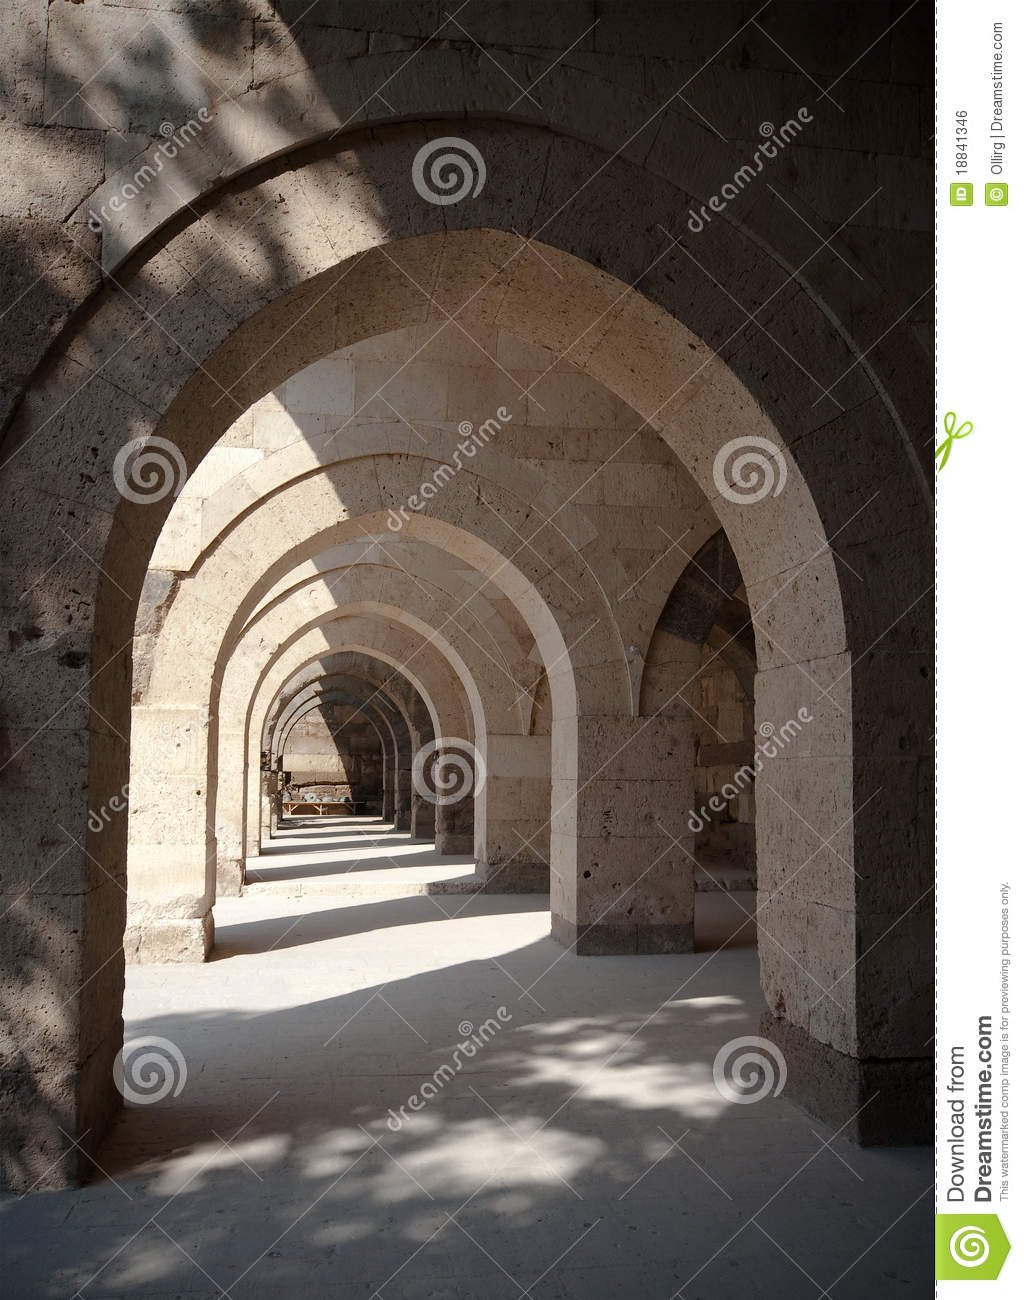 Multiple Arches And Columns Royalty Free Stock Image